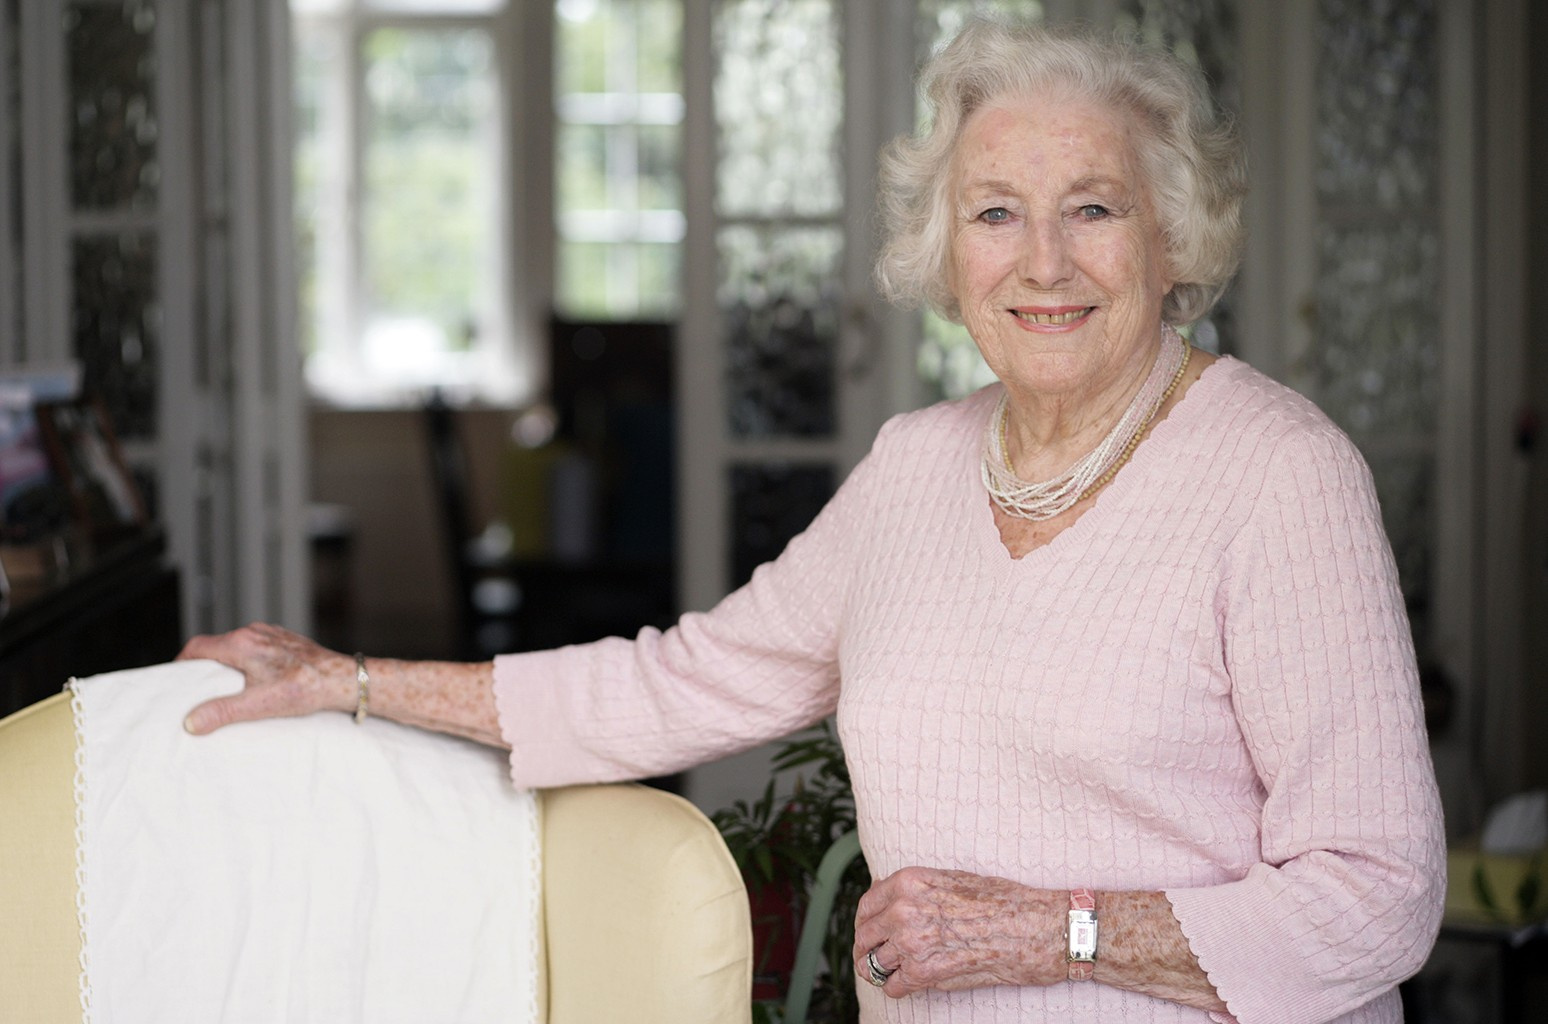 Dame Vera Lynn photographed in her home in Sussex on April 27, 2010.